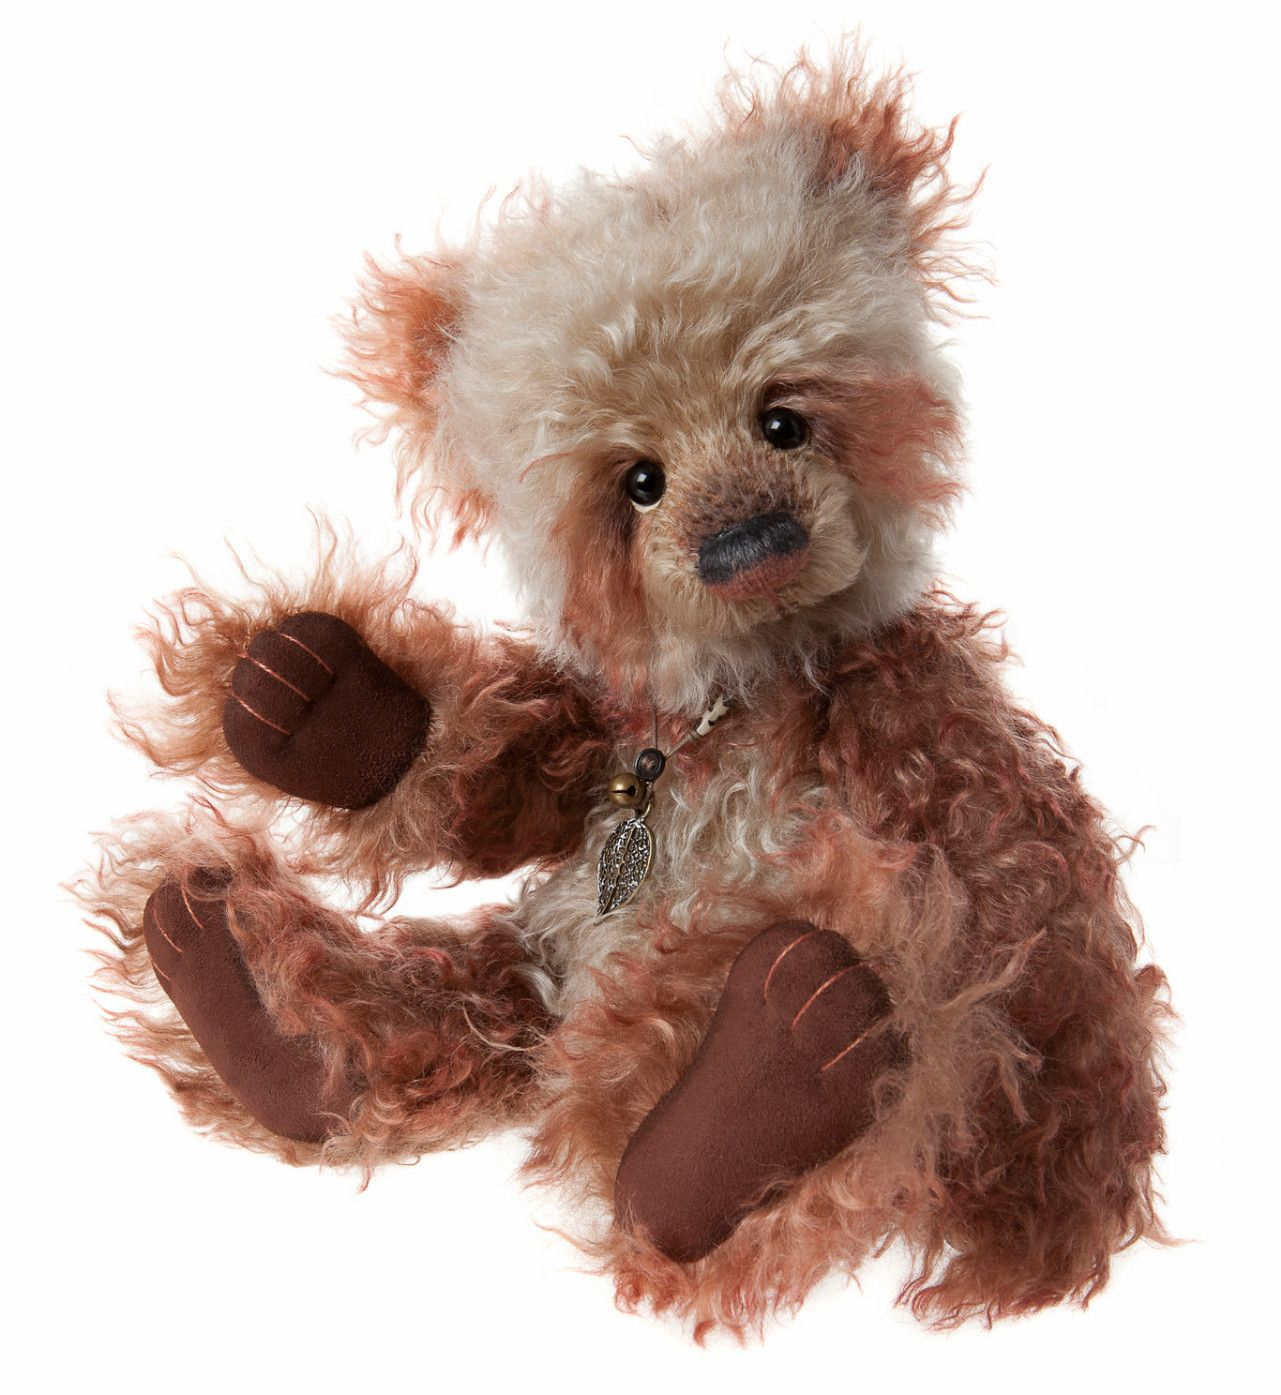 Cagney Bear - Charlie Bears from The Holiday Barn